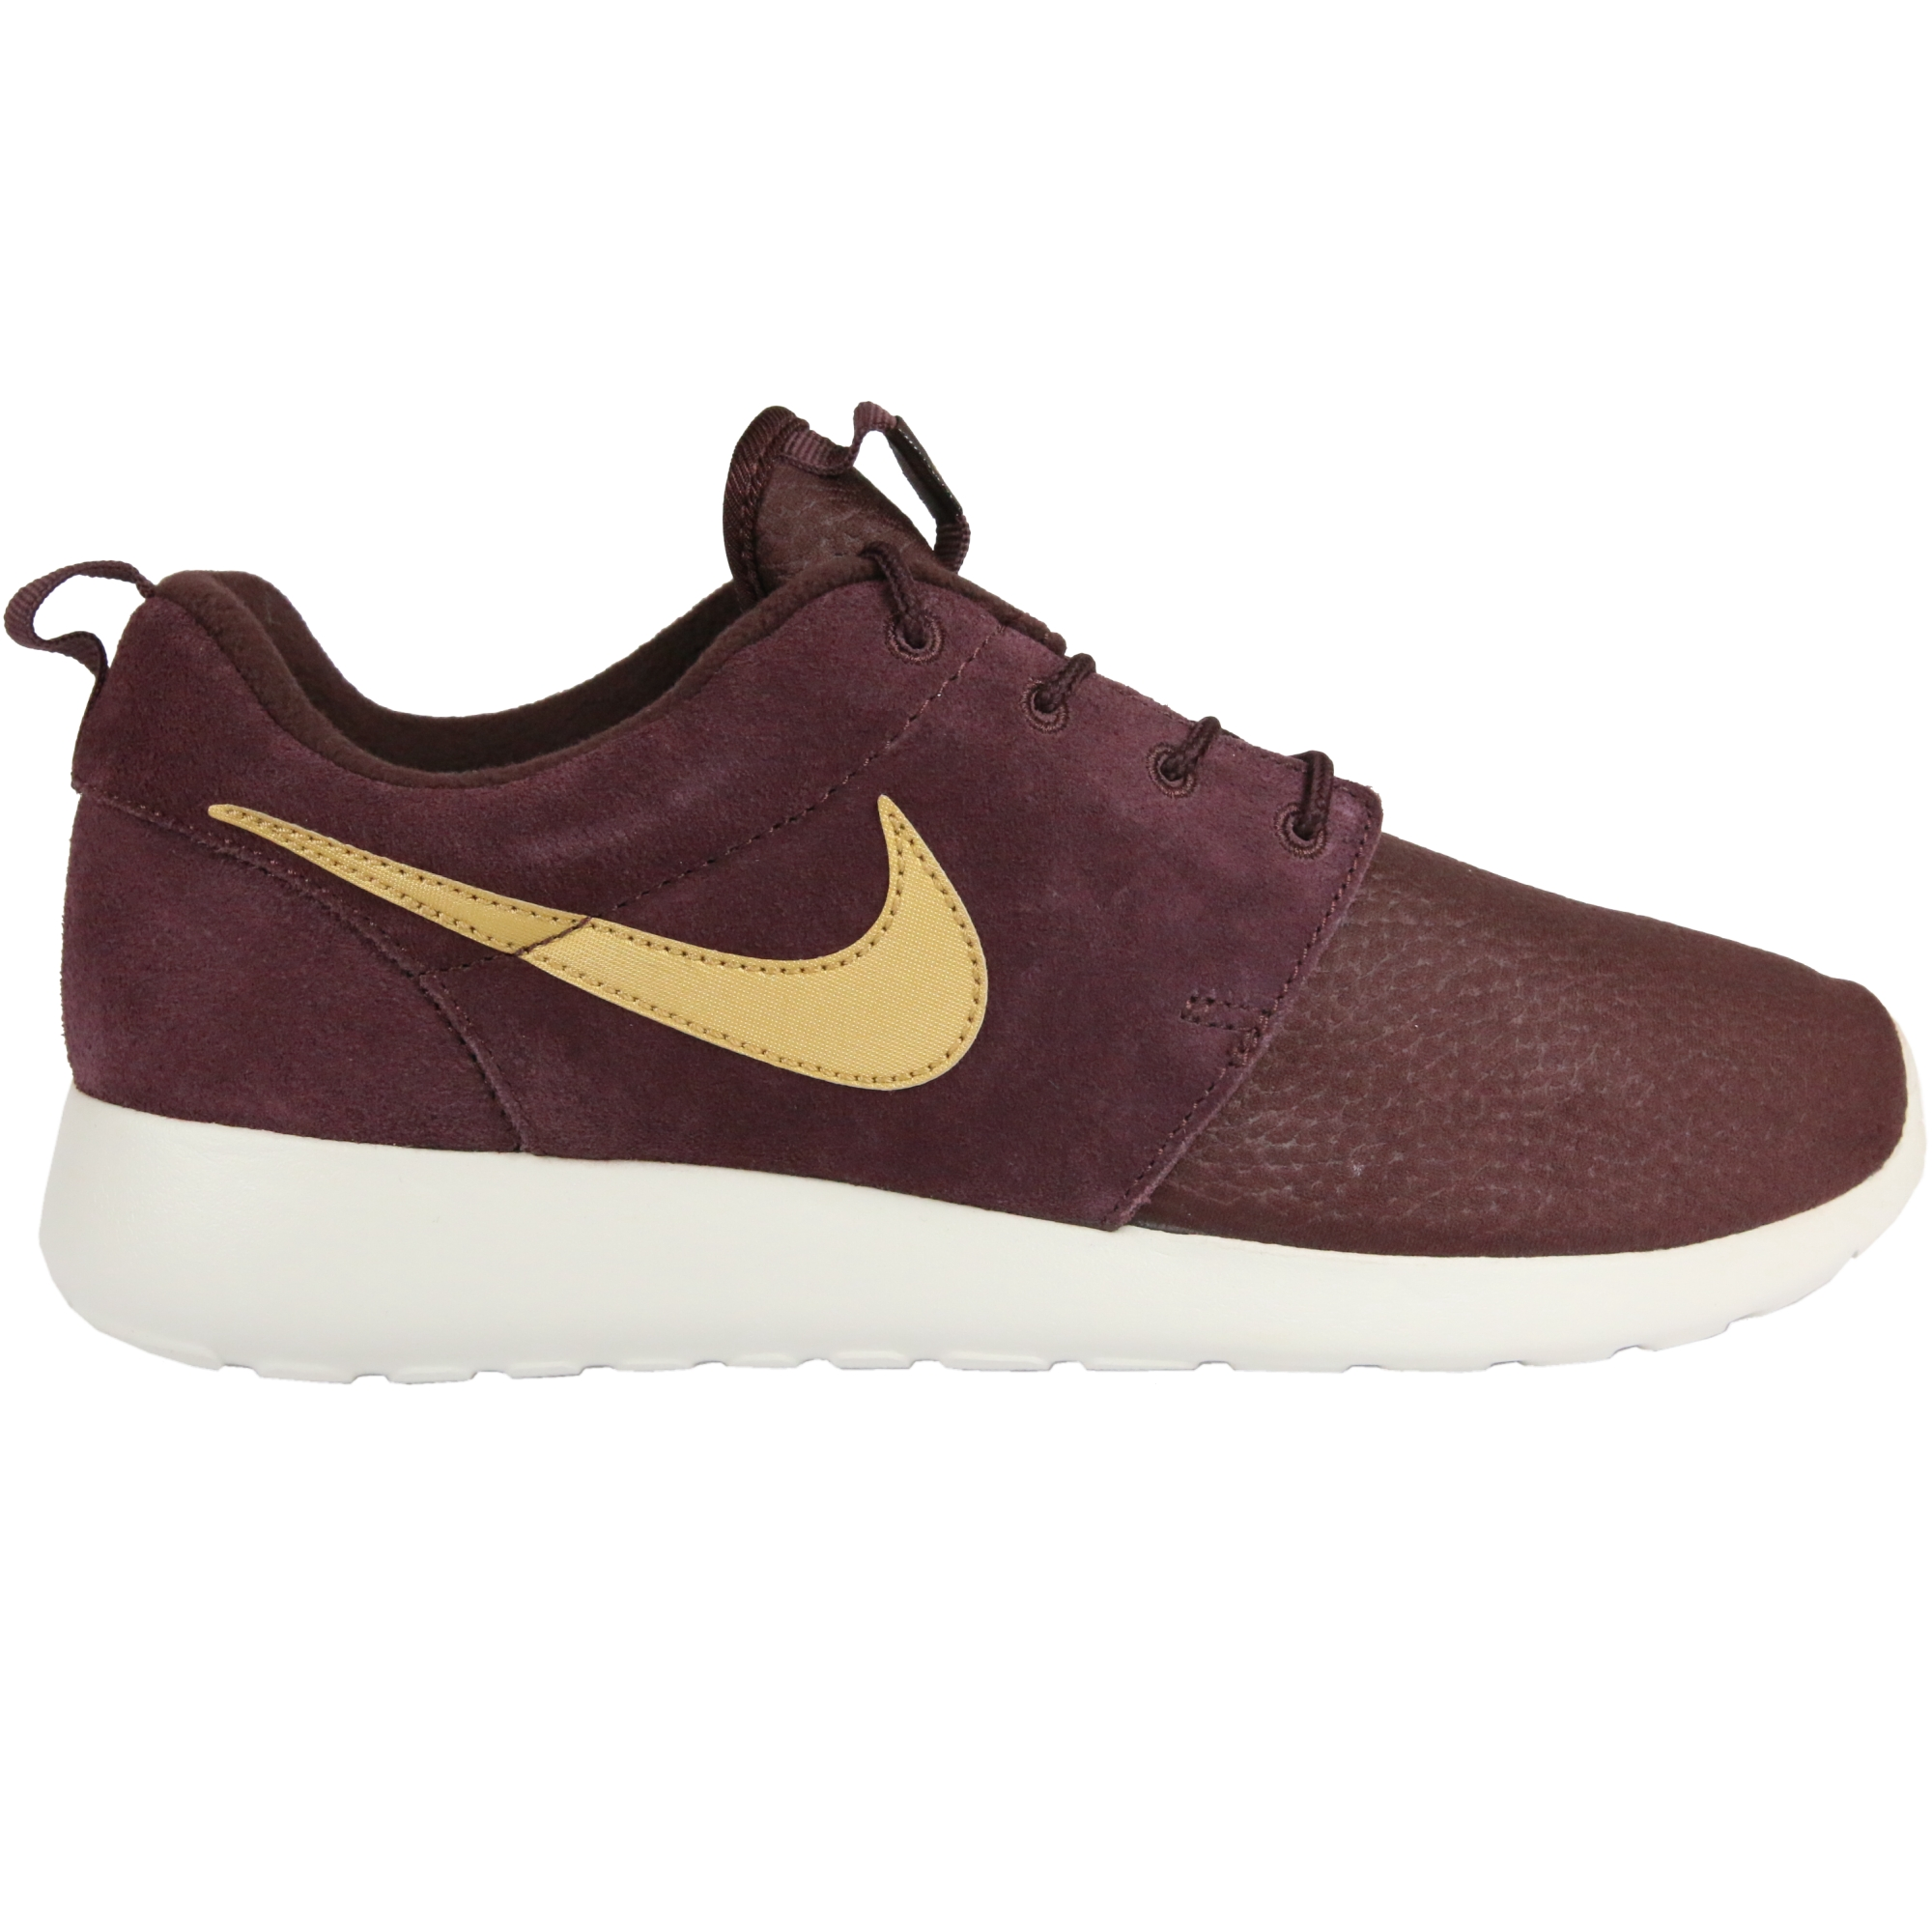 nike roshe one schuhe turnschuhe sneaker herren run. Black Bedroom Furniture Sets. Home Design Ideas